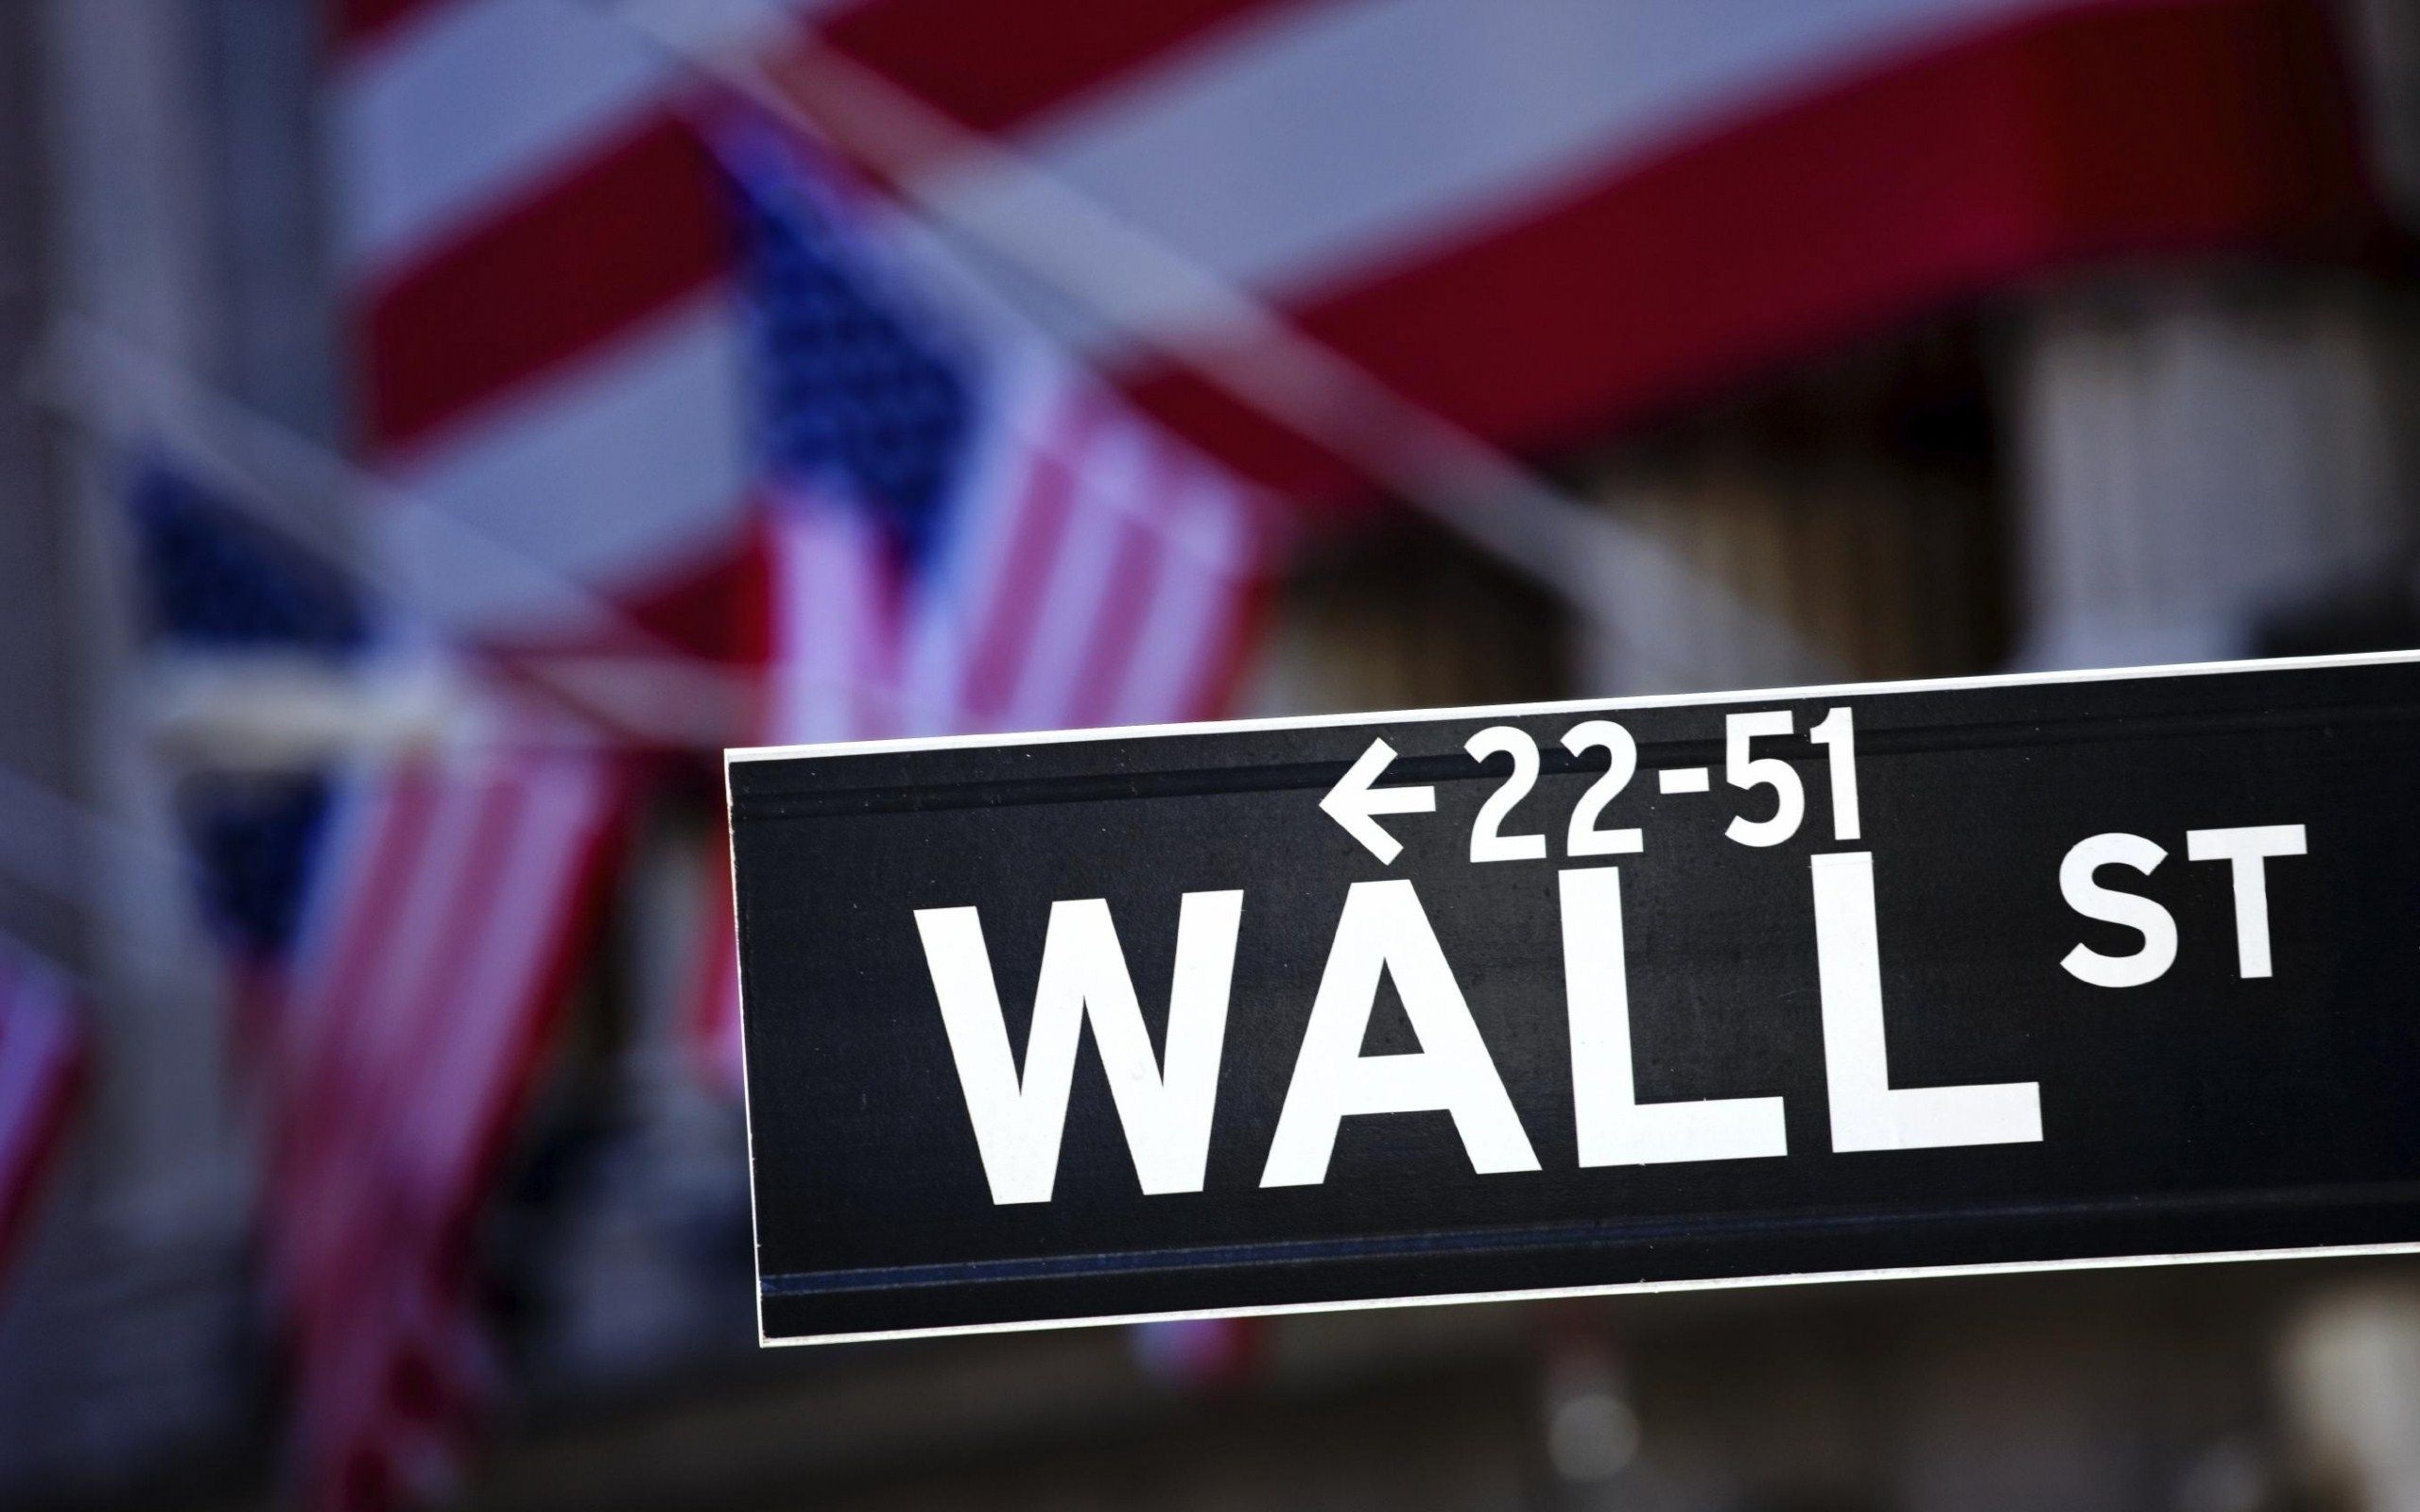 Wall Street Wallpapers